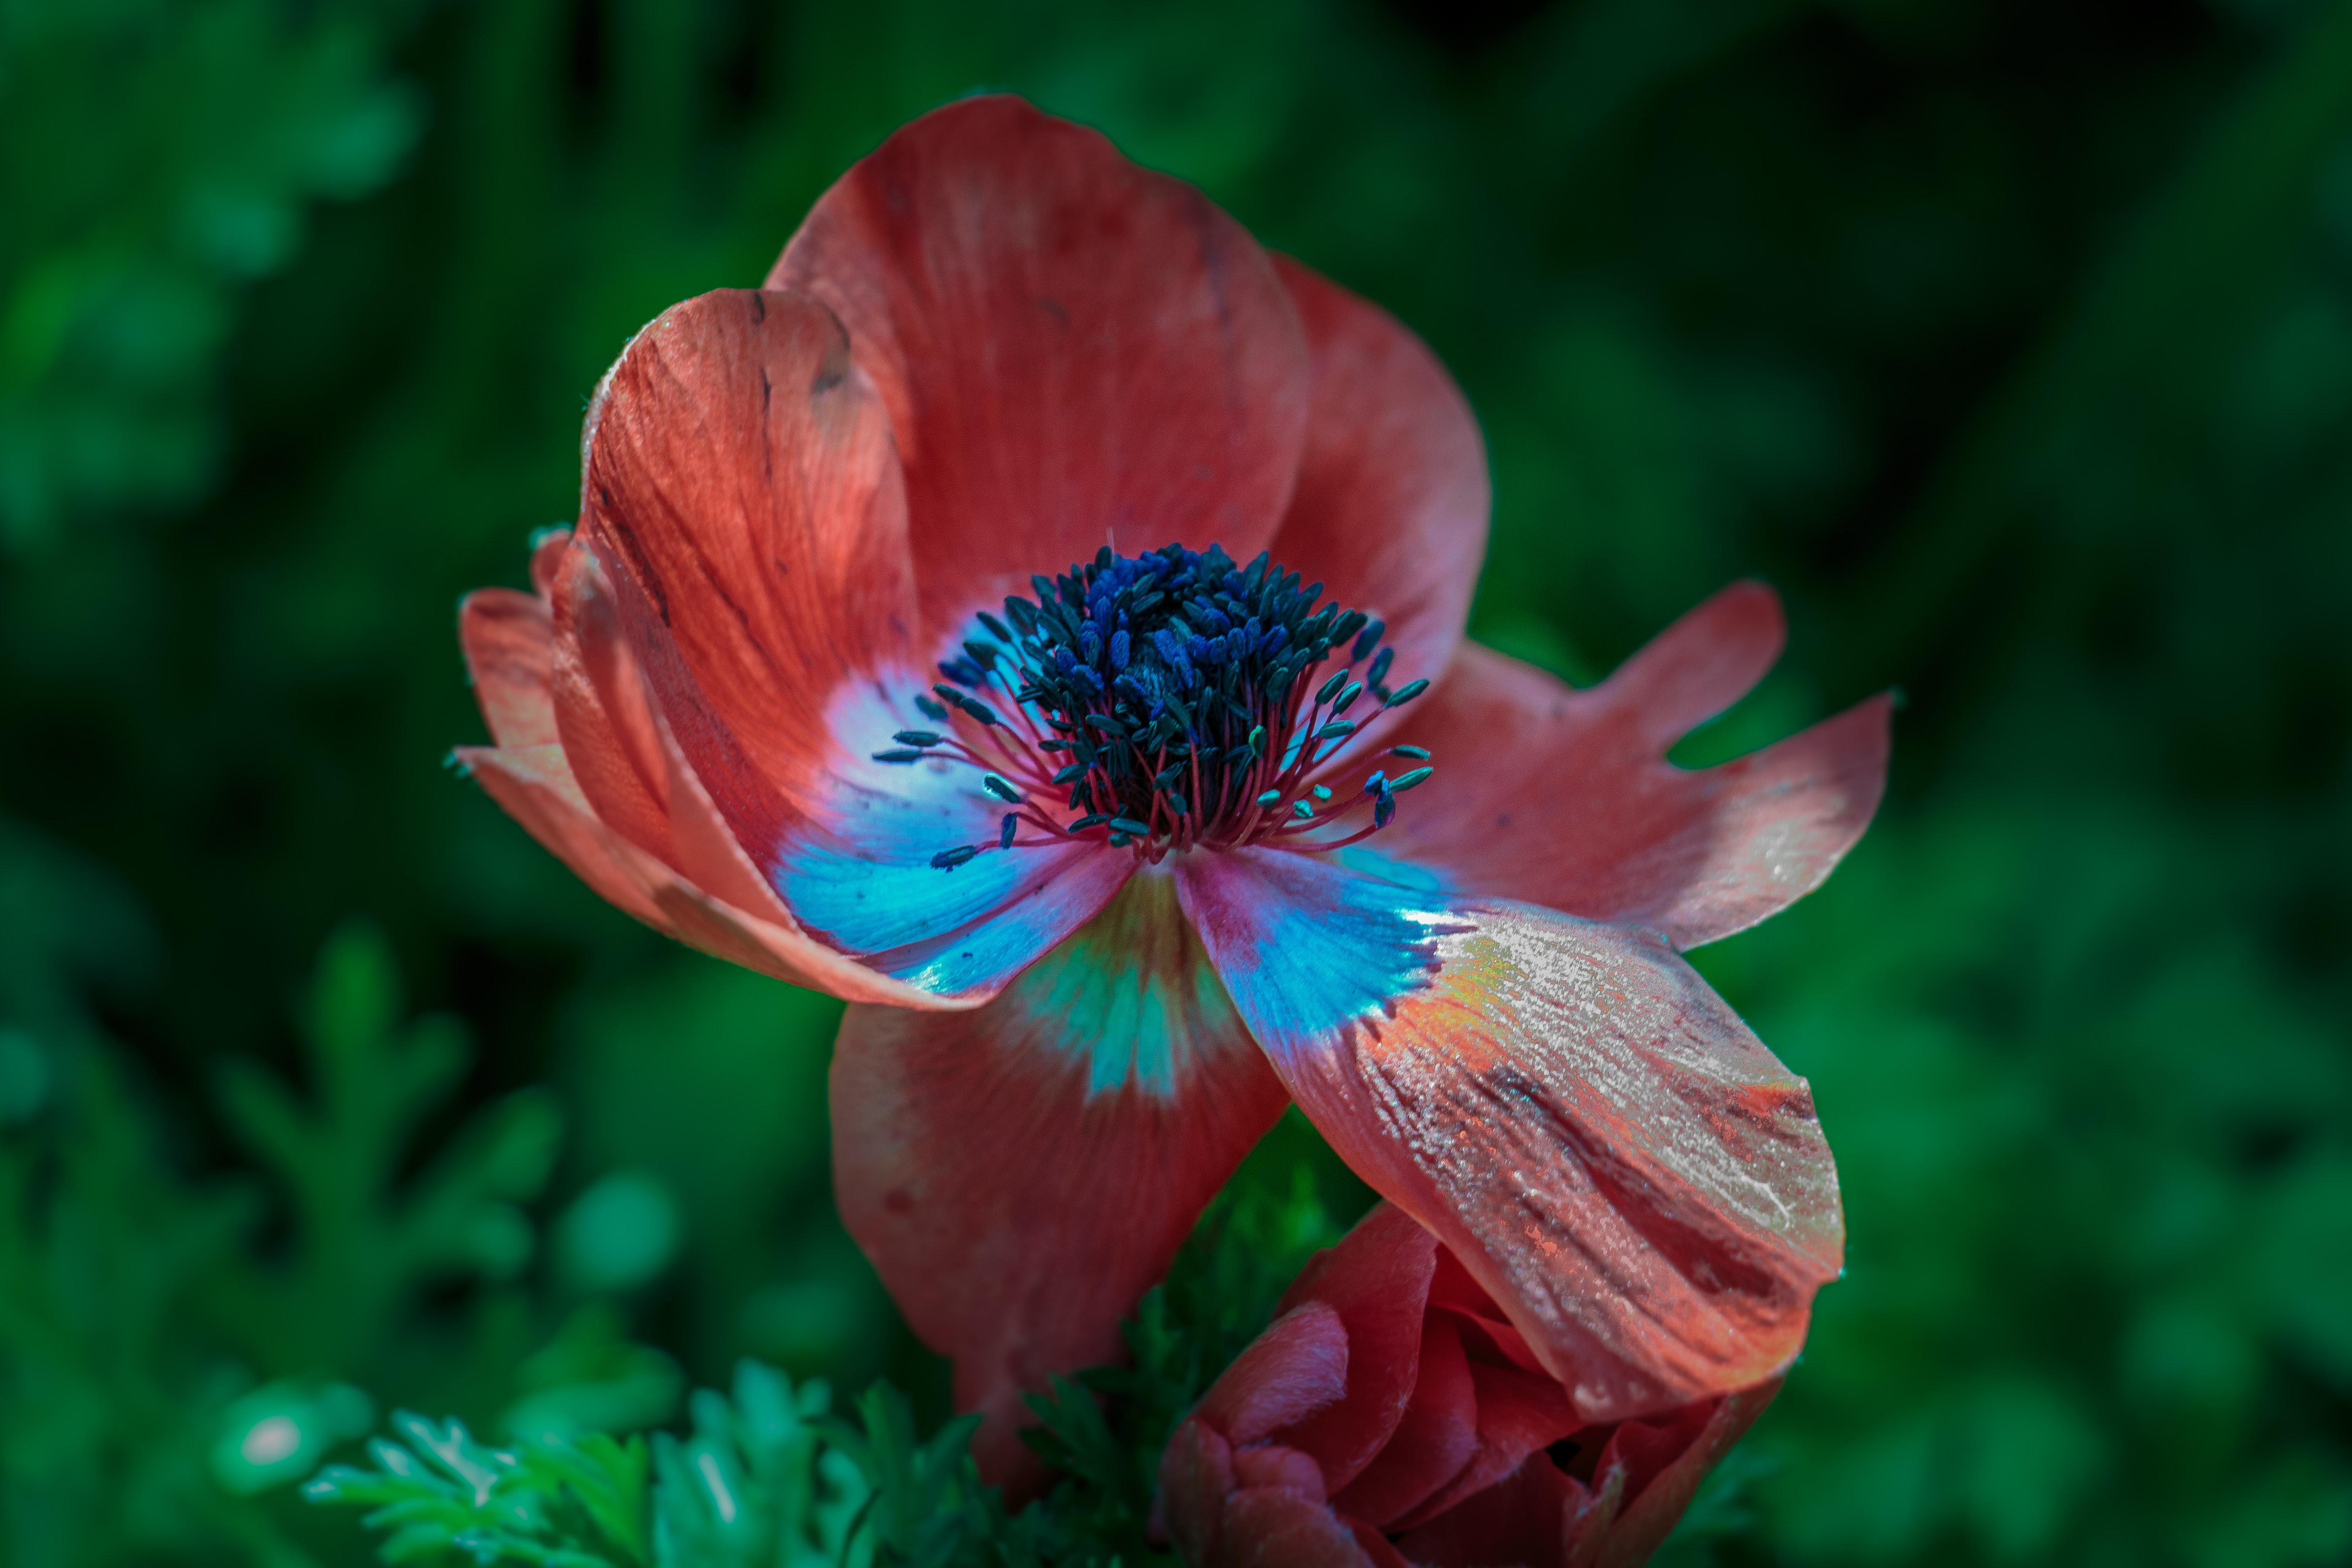 shallow focus photography of red petal flower